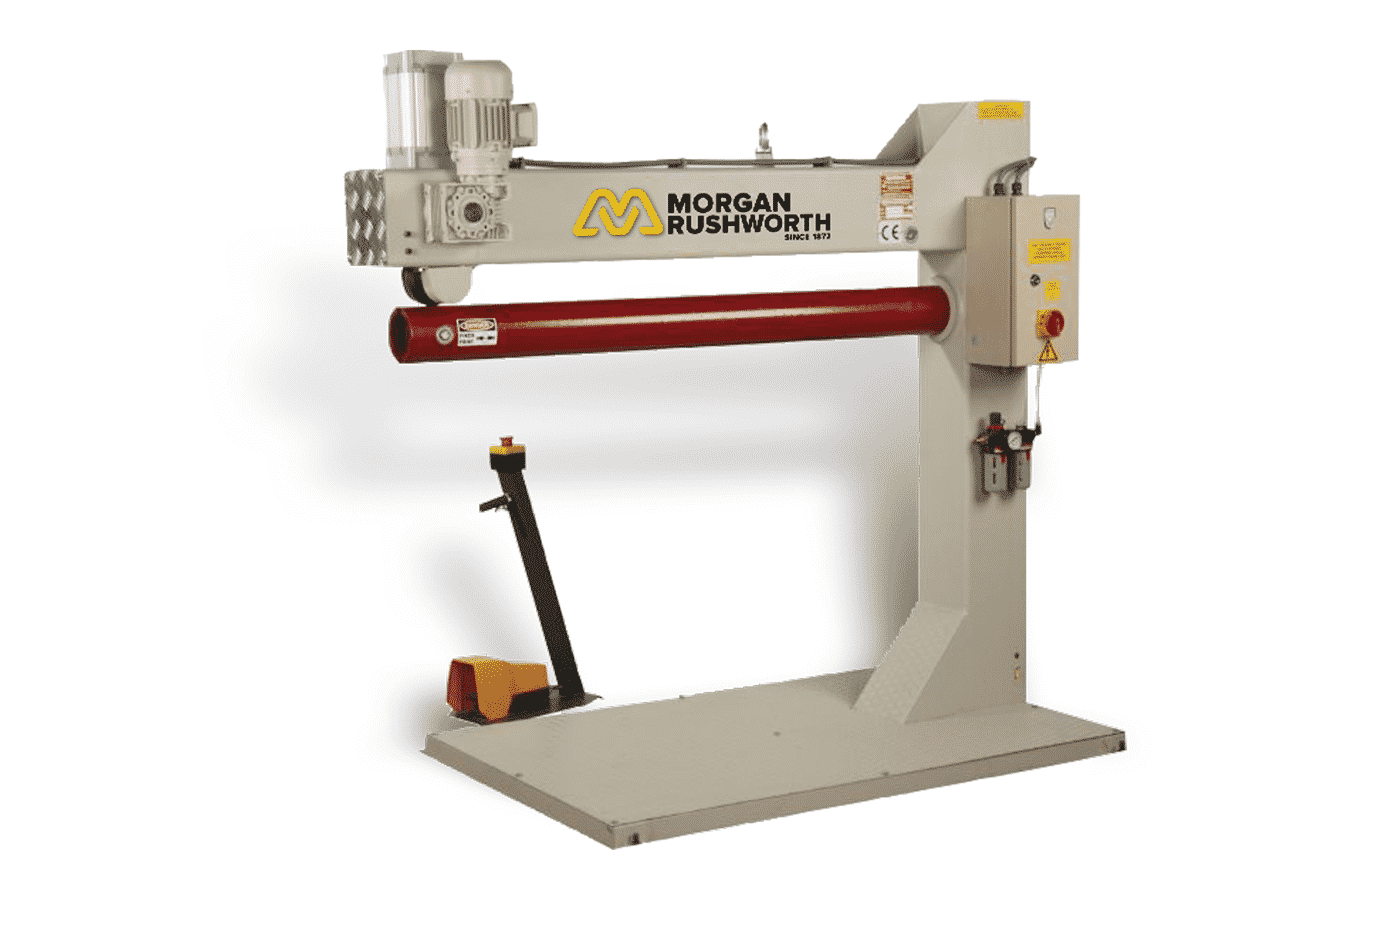 Morgan Rushworth PSC 1320/1.2 Pneumatic Seam Closer 415V